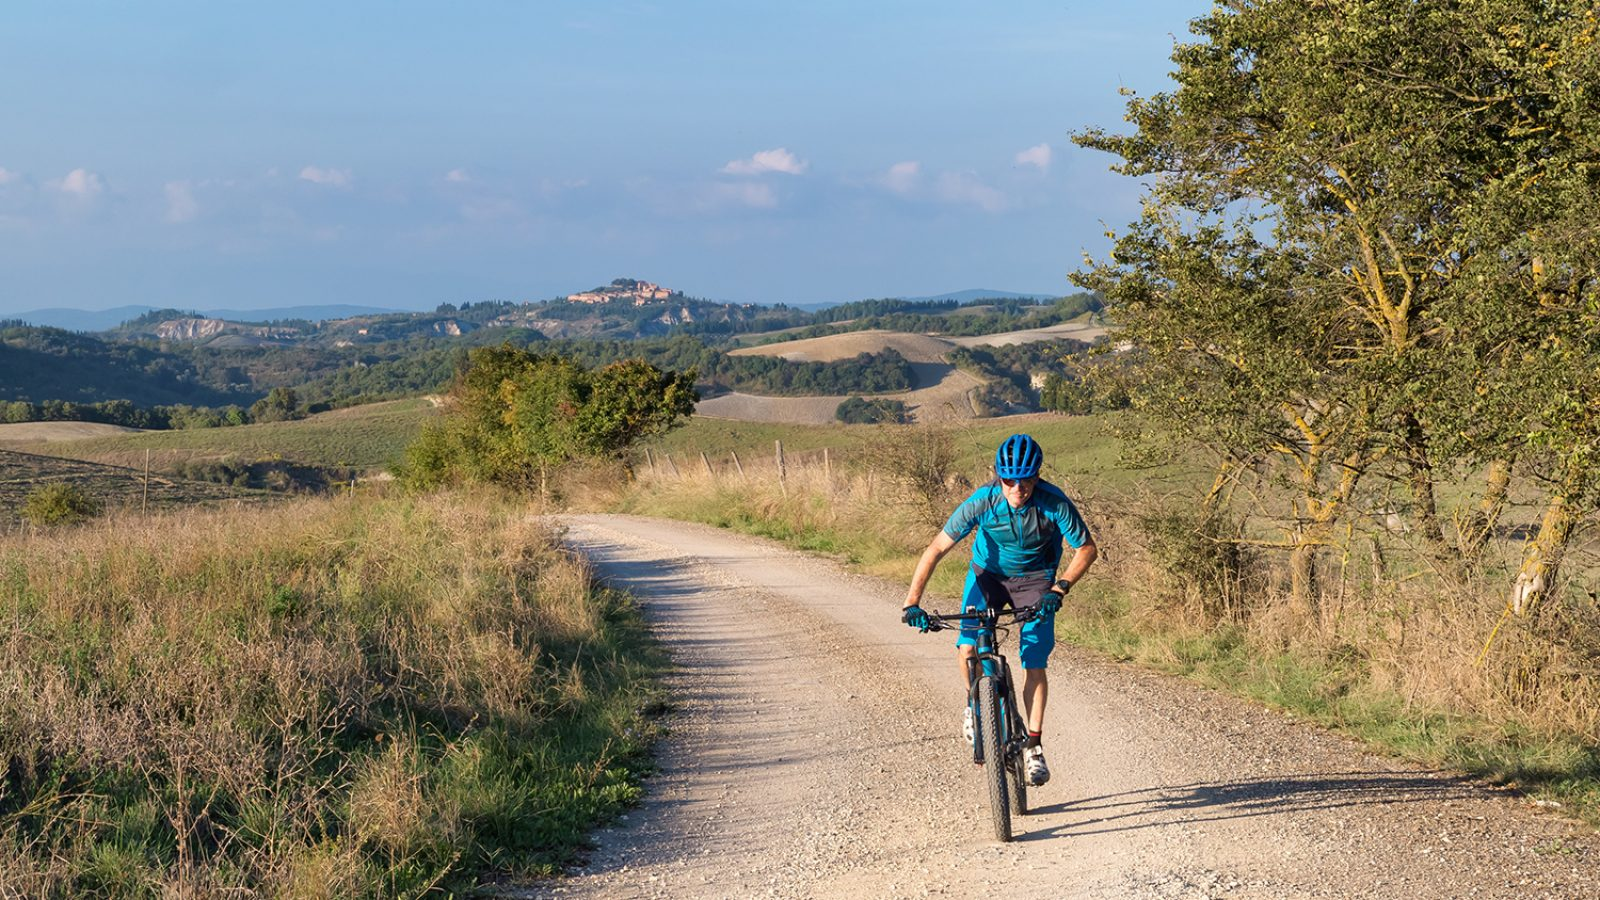 Off-road cycling holidays in Tuscany with Casa Marchi